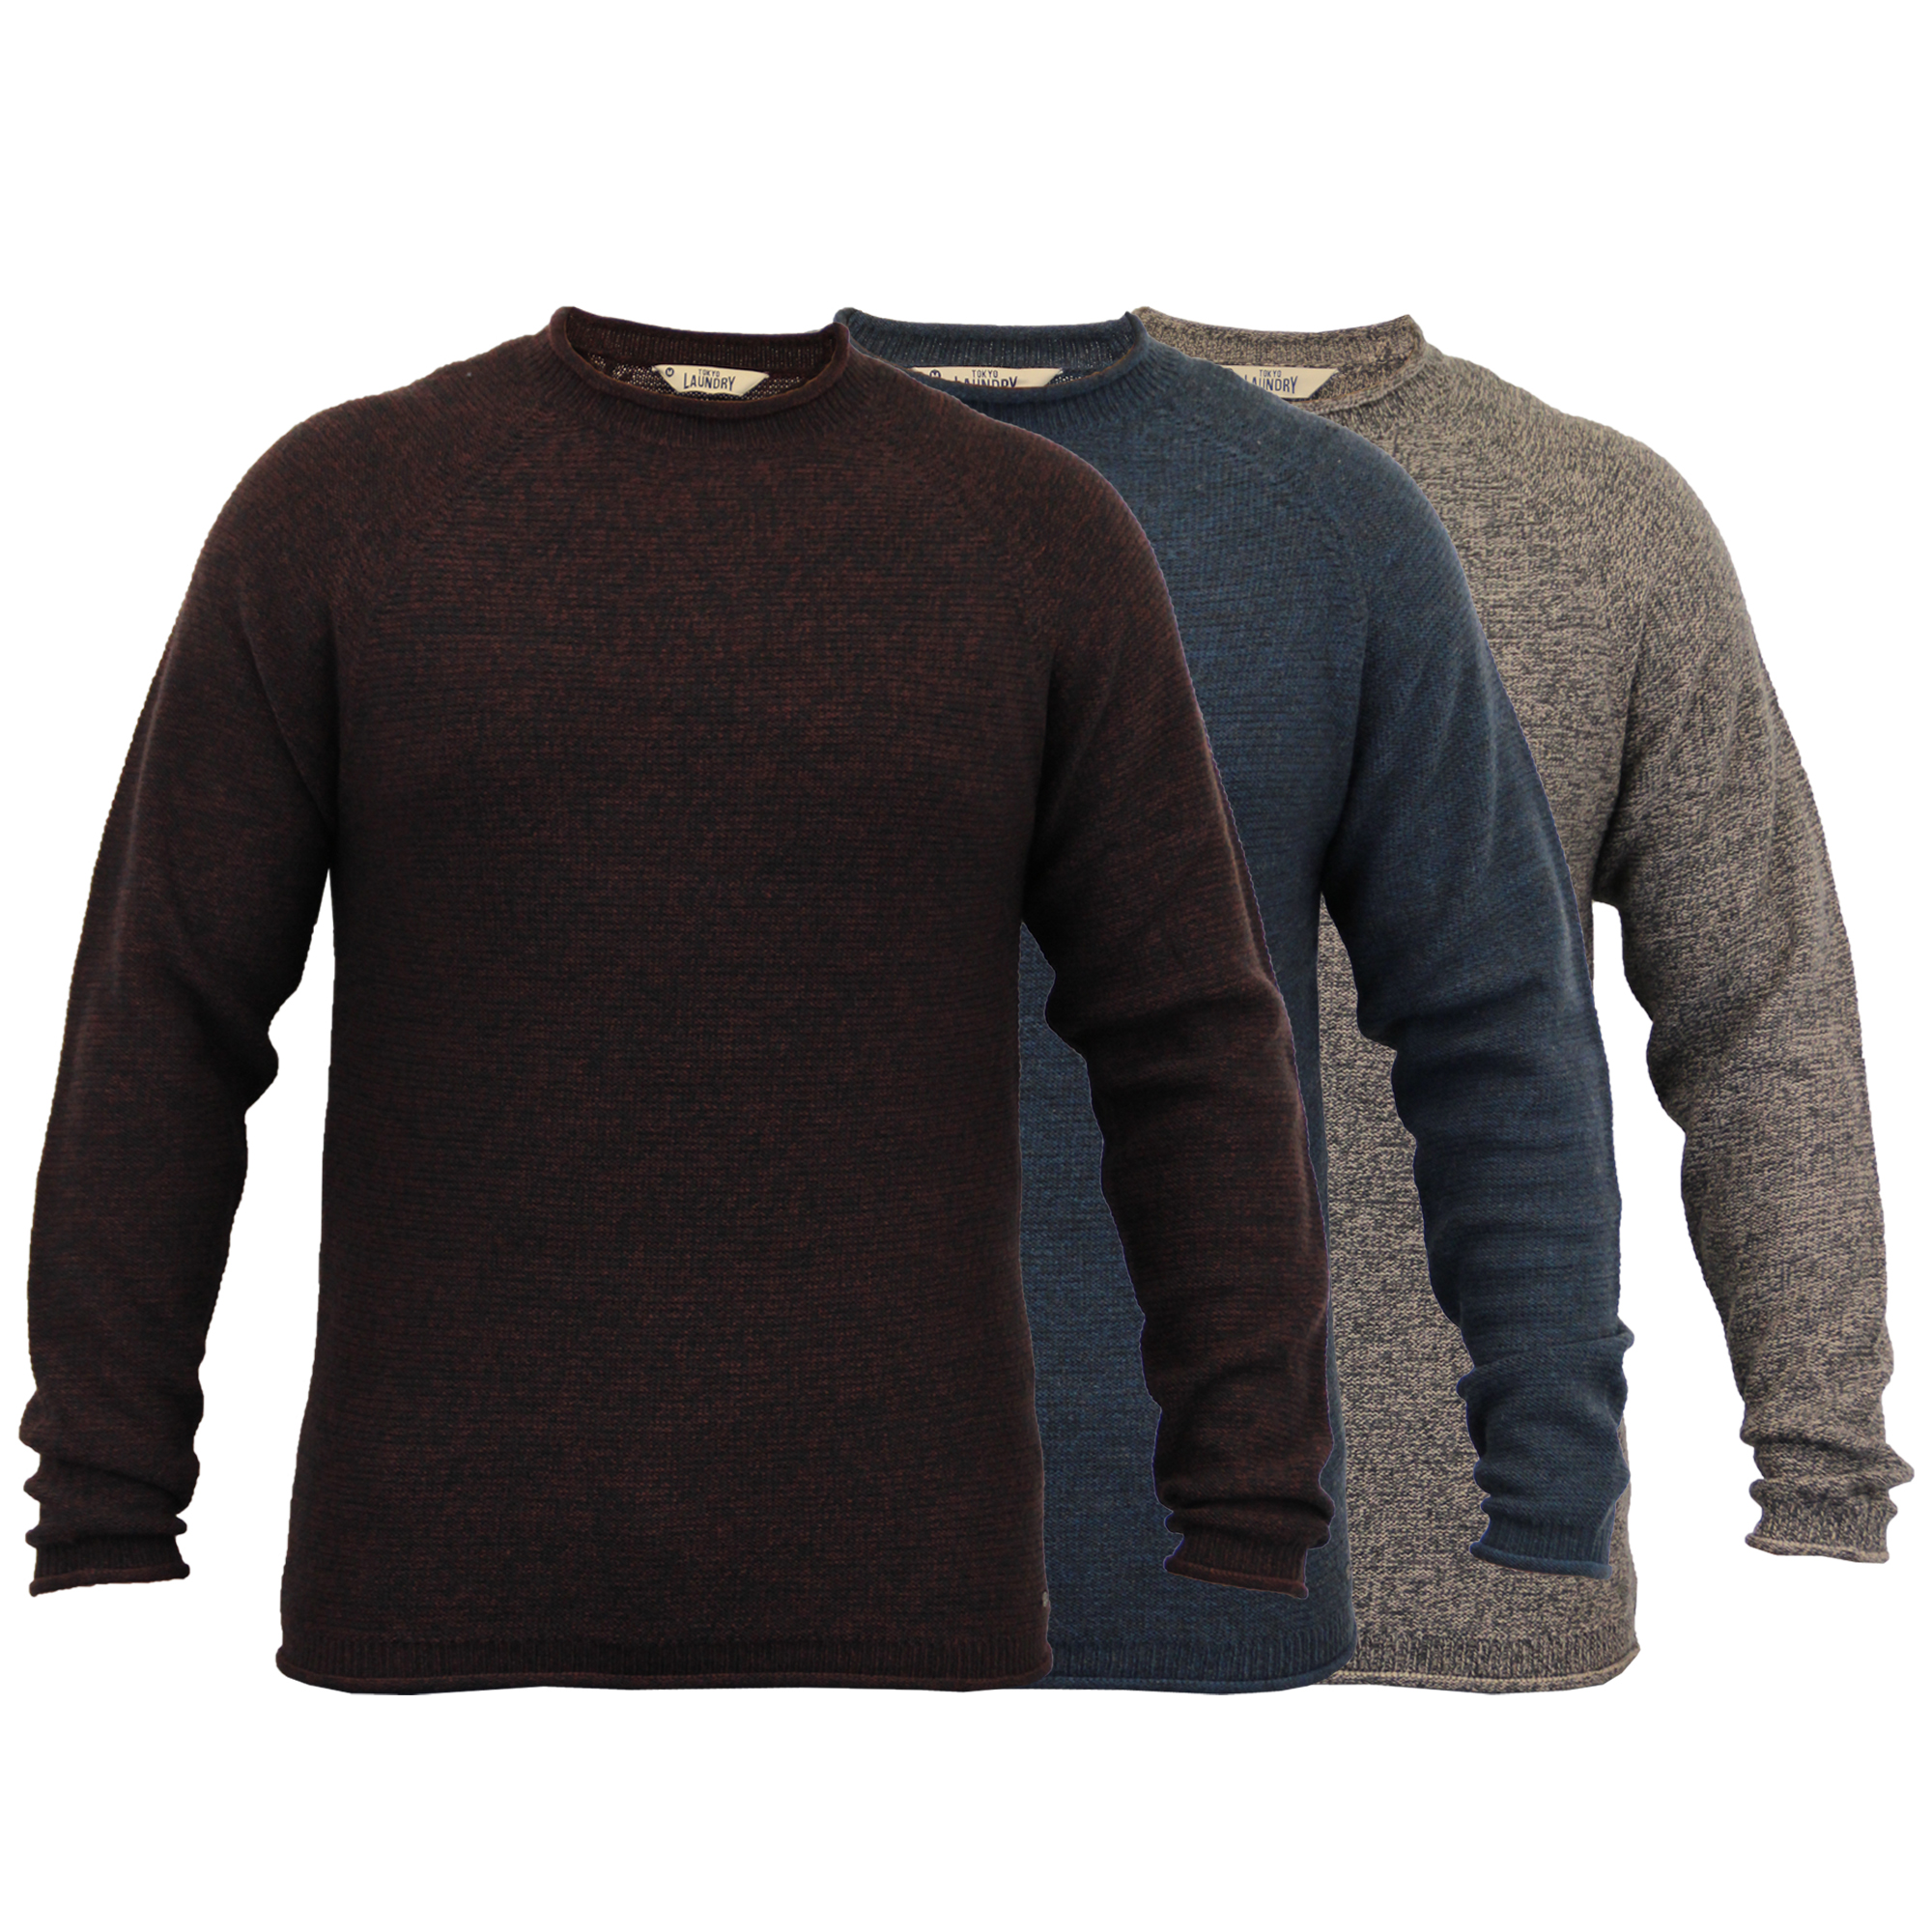 Knitting Mens Jumpers : Mens knitted wool blend jumper pullover top winter sweater